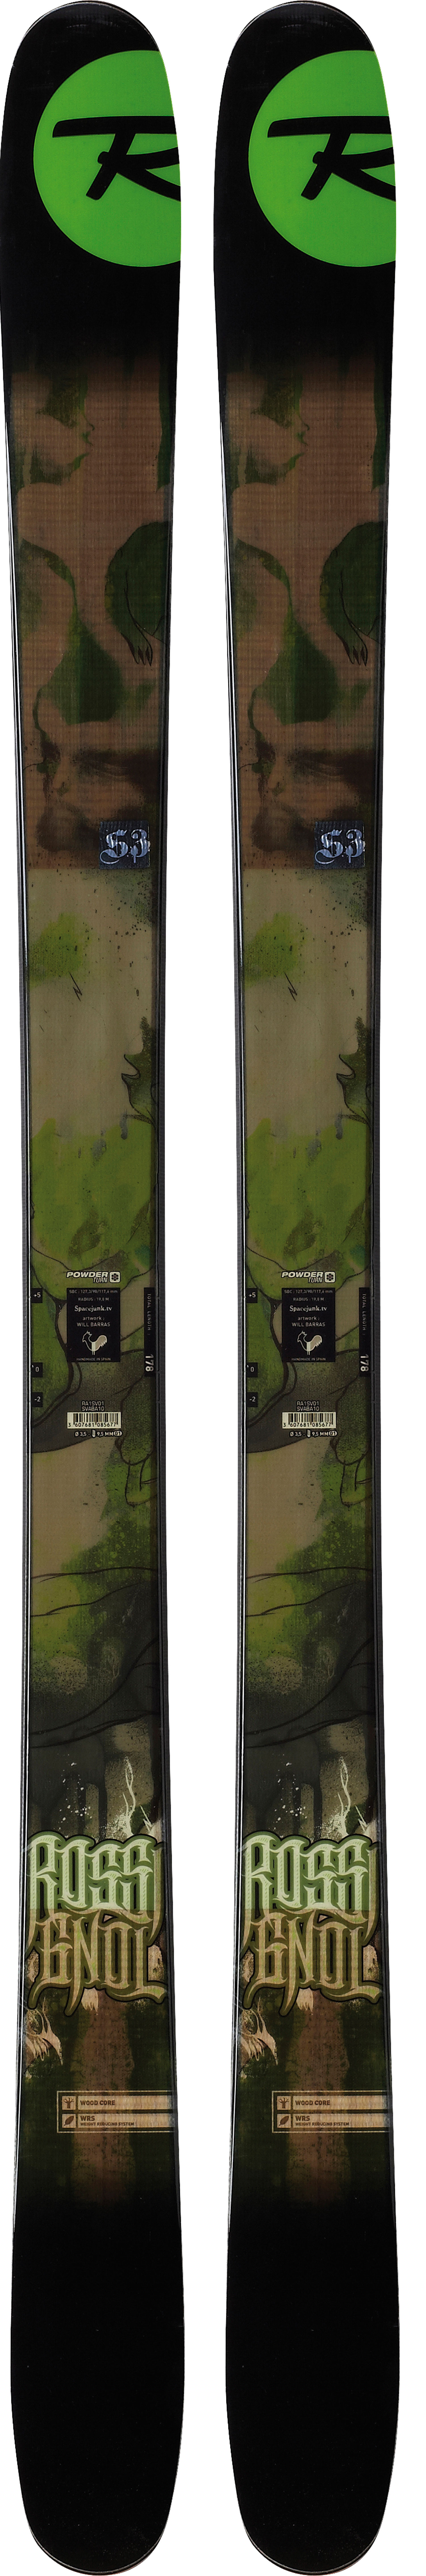 Ski The S series includes several world-renowned freeride skis aimed at big mountain riders, side country aficionados and everyone who loves exploring off-trail. The award-winning, game-changing S3, provide amazing flotation and tracking, easy-steering and speed control, and respectable skiing on groomers. The S Series has significant consumer demand and sky- rocketing sell-through. These skis appeal to everyone from hard-core to aspiring powder enthusiast and should be an essential consideration for every specialty retail assortment.  Powder Turn Rocker   Centered Sidecut   Spoon Tip   Structure: Sandwich   Core: Wood      Laminates: Fiberglass   Sidecut: 128/98/118   Radius: 23M @ 186   Recommended Binding (not included :  Axium 120 Xl - $359.95